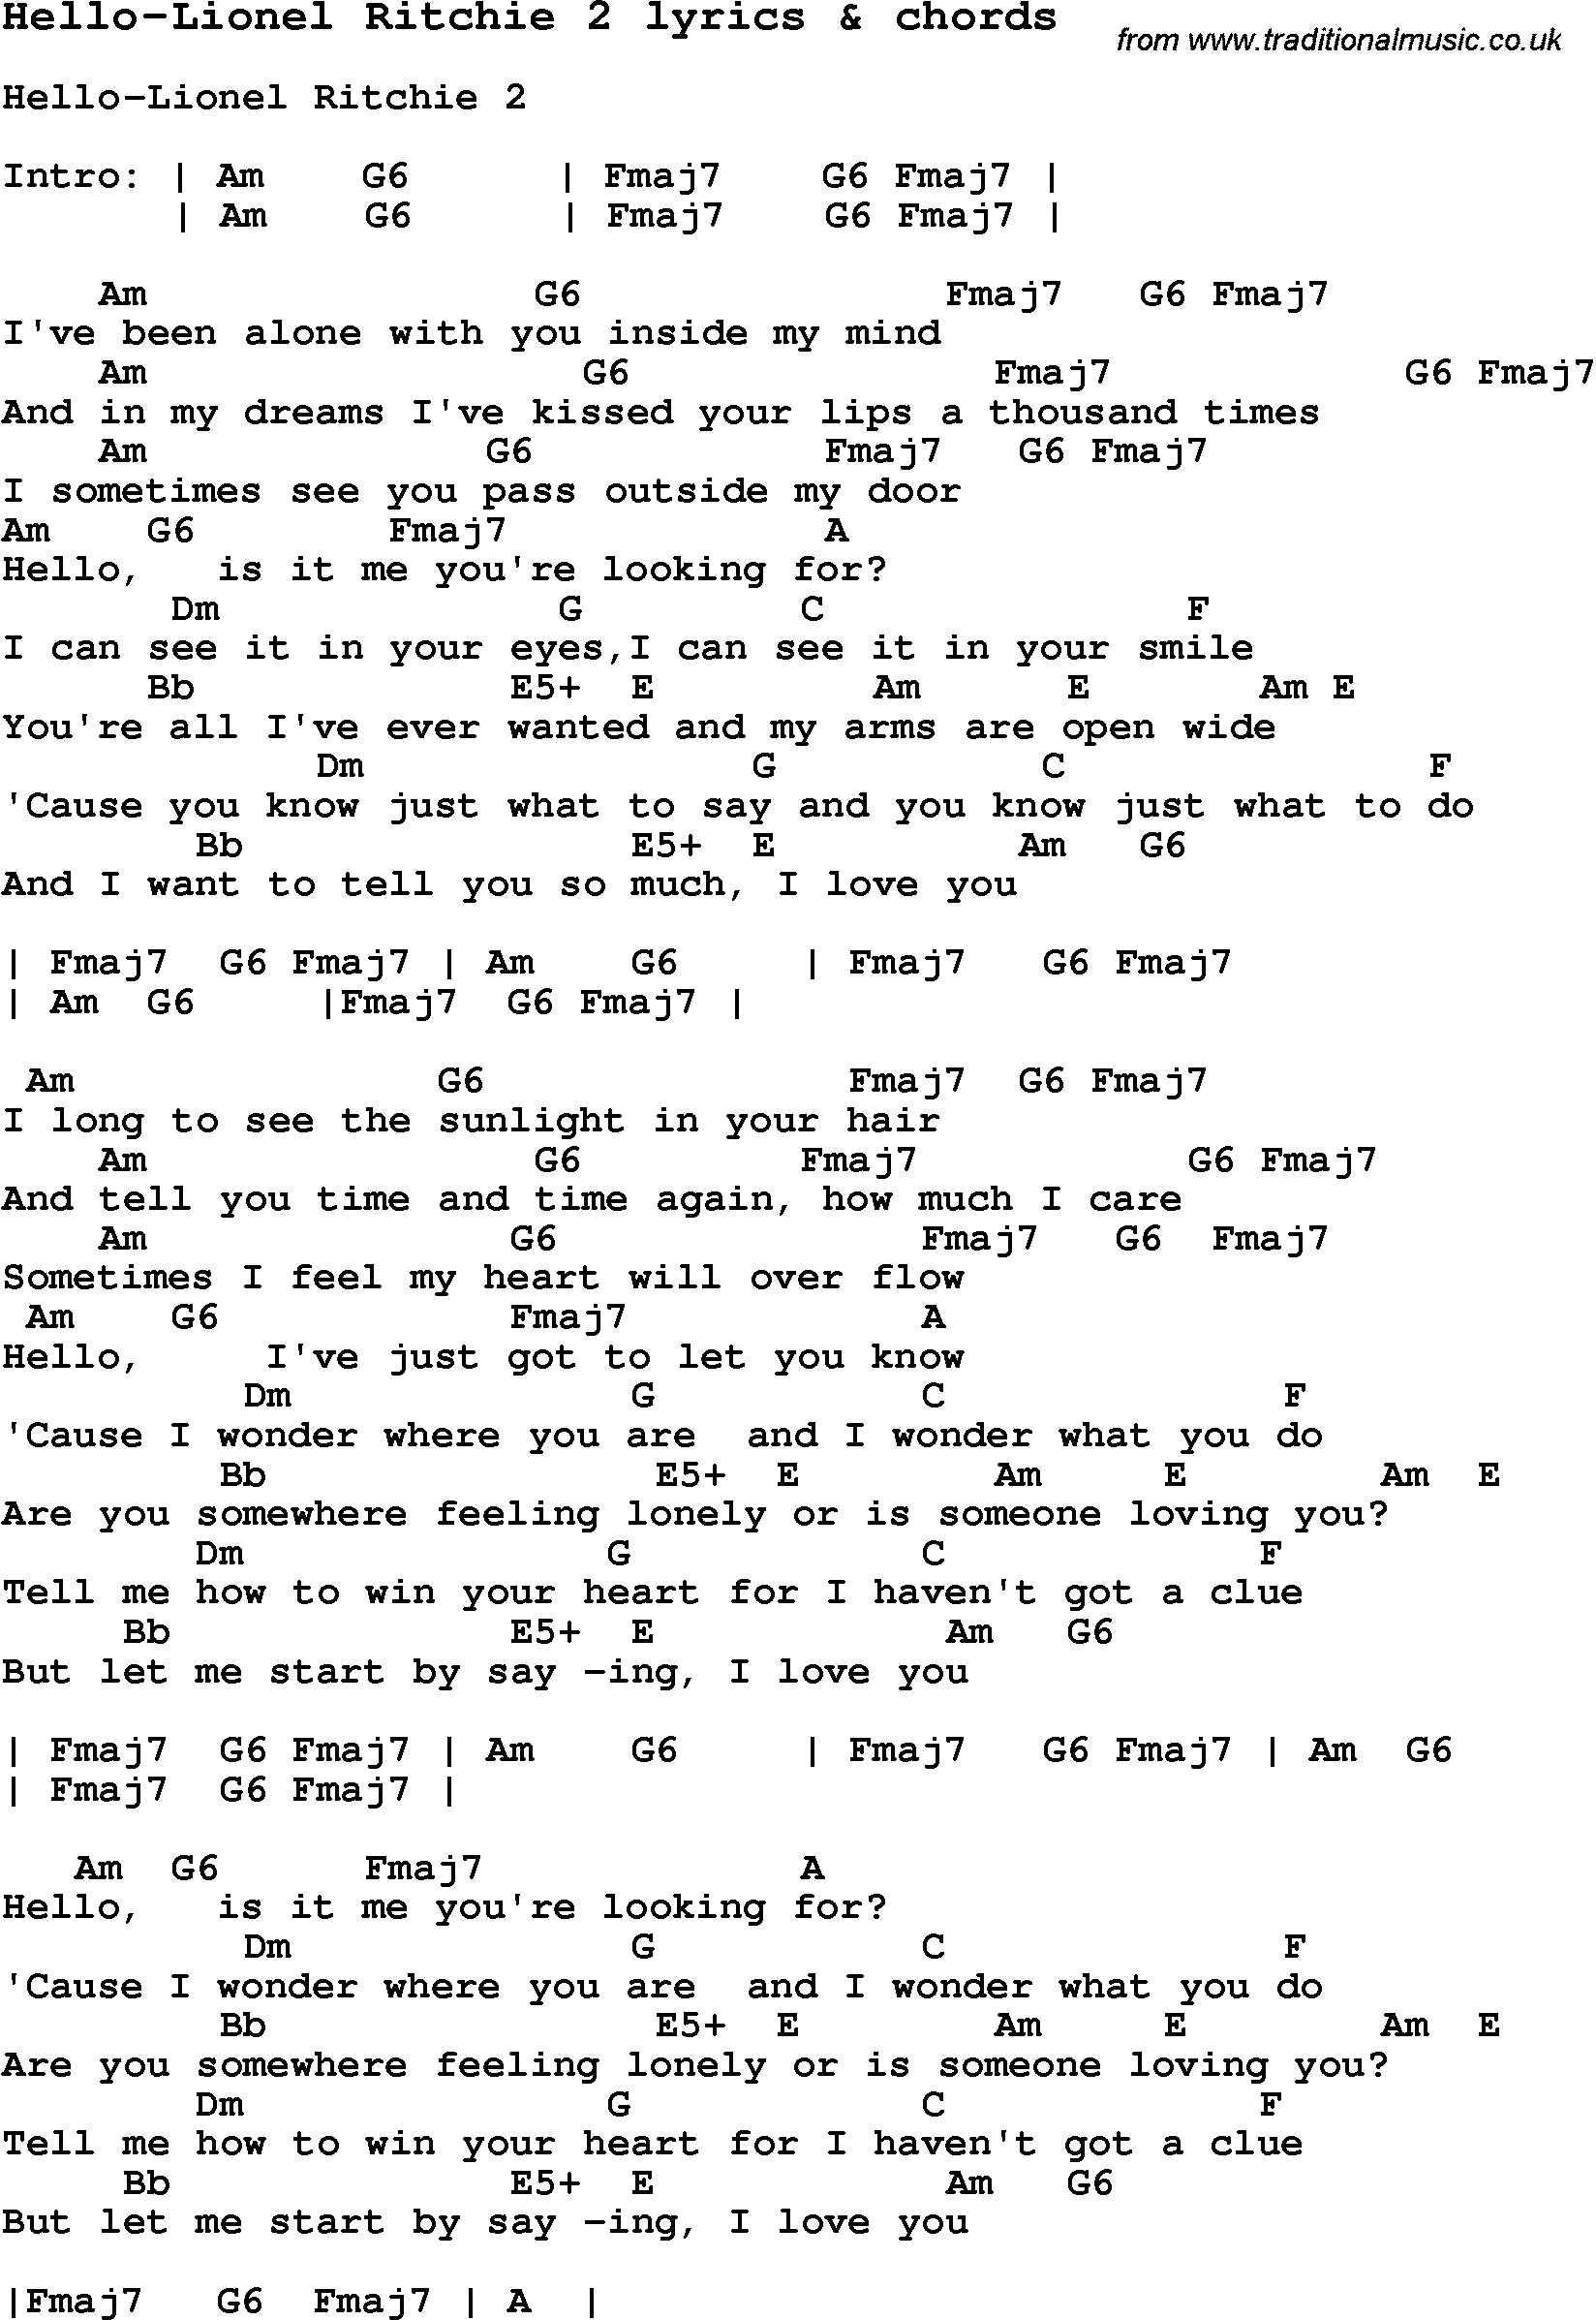 Love Song Lyrics Forhello Lionel Ritchie 2 With Chords